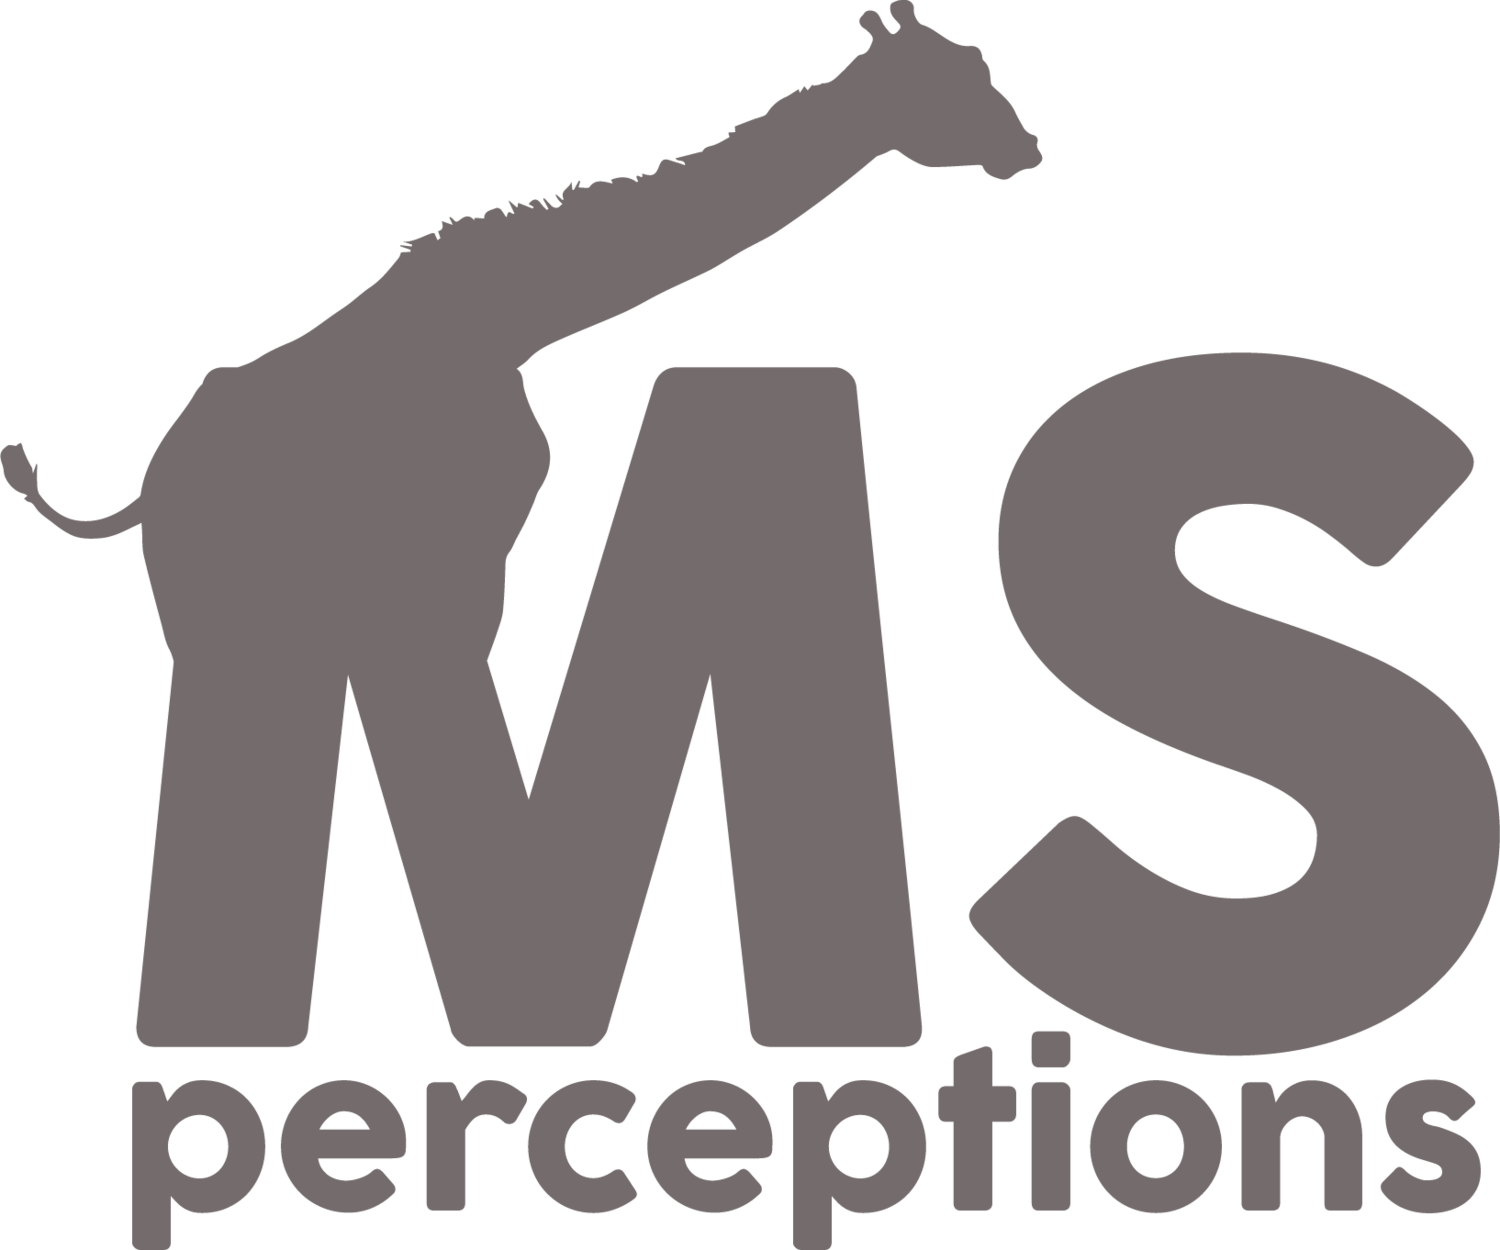 MS.perceptions